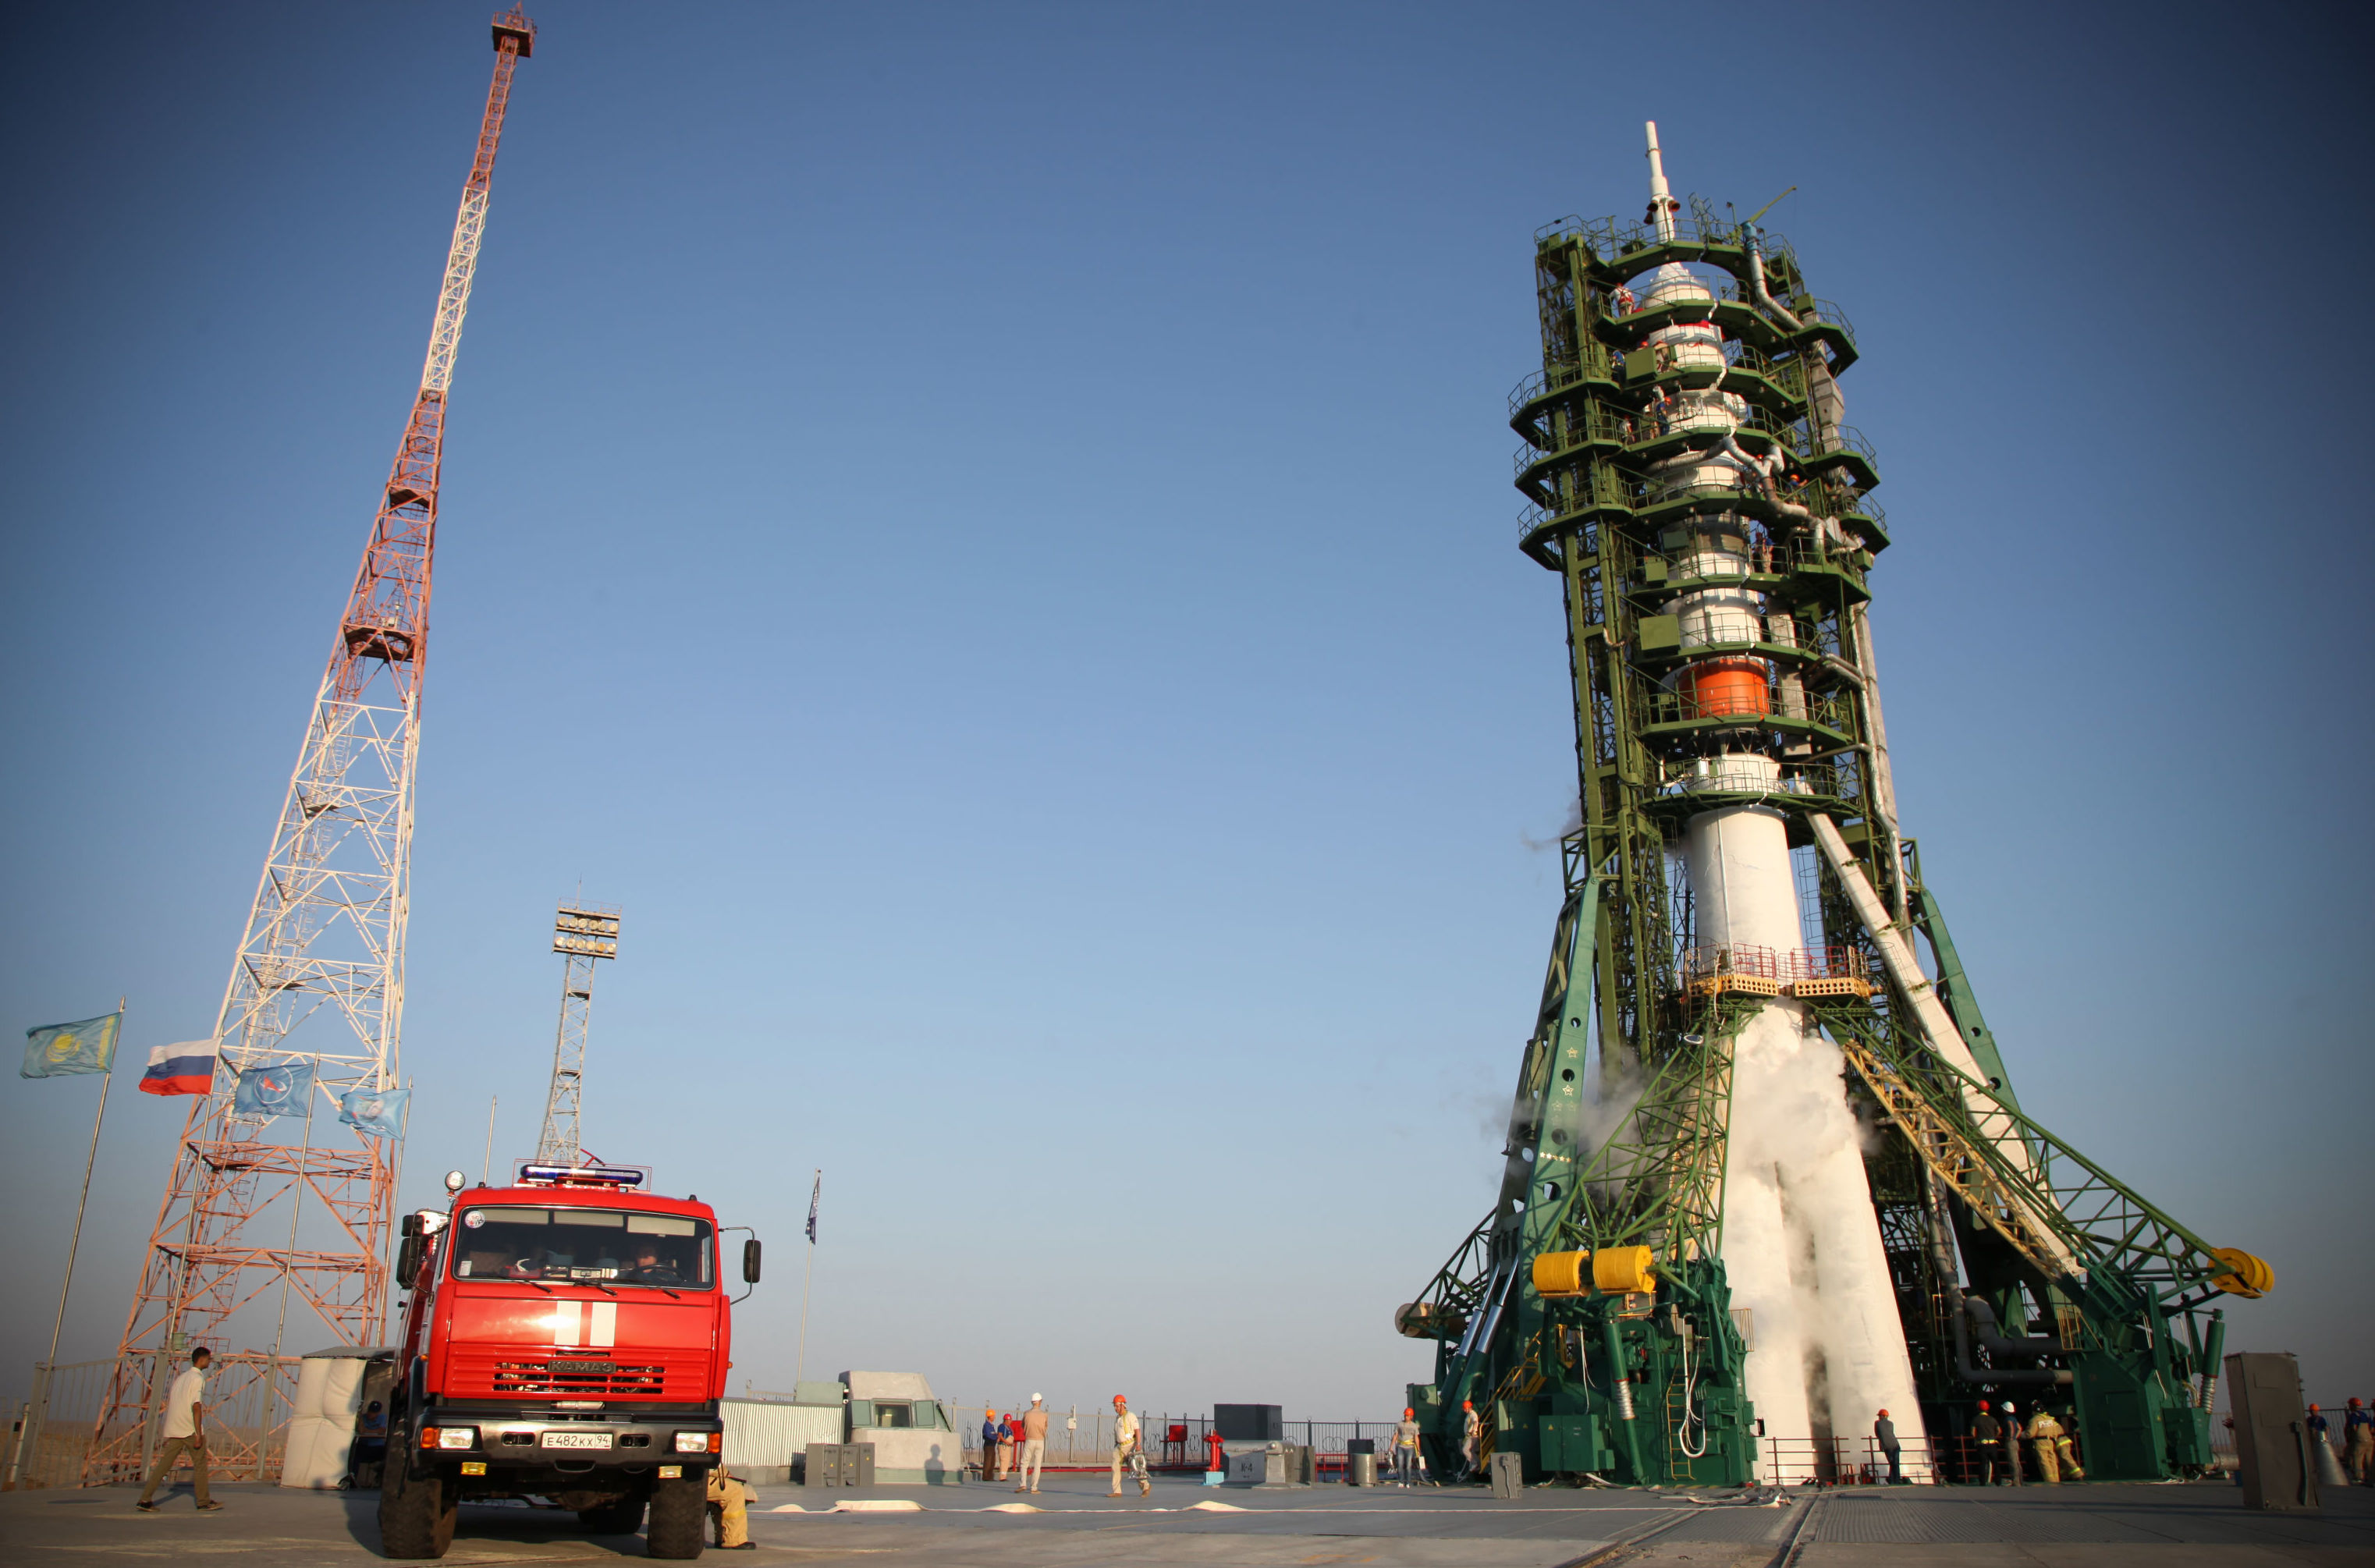 Soyuz-2.1a carrier rocket is being prepared to be launched